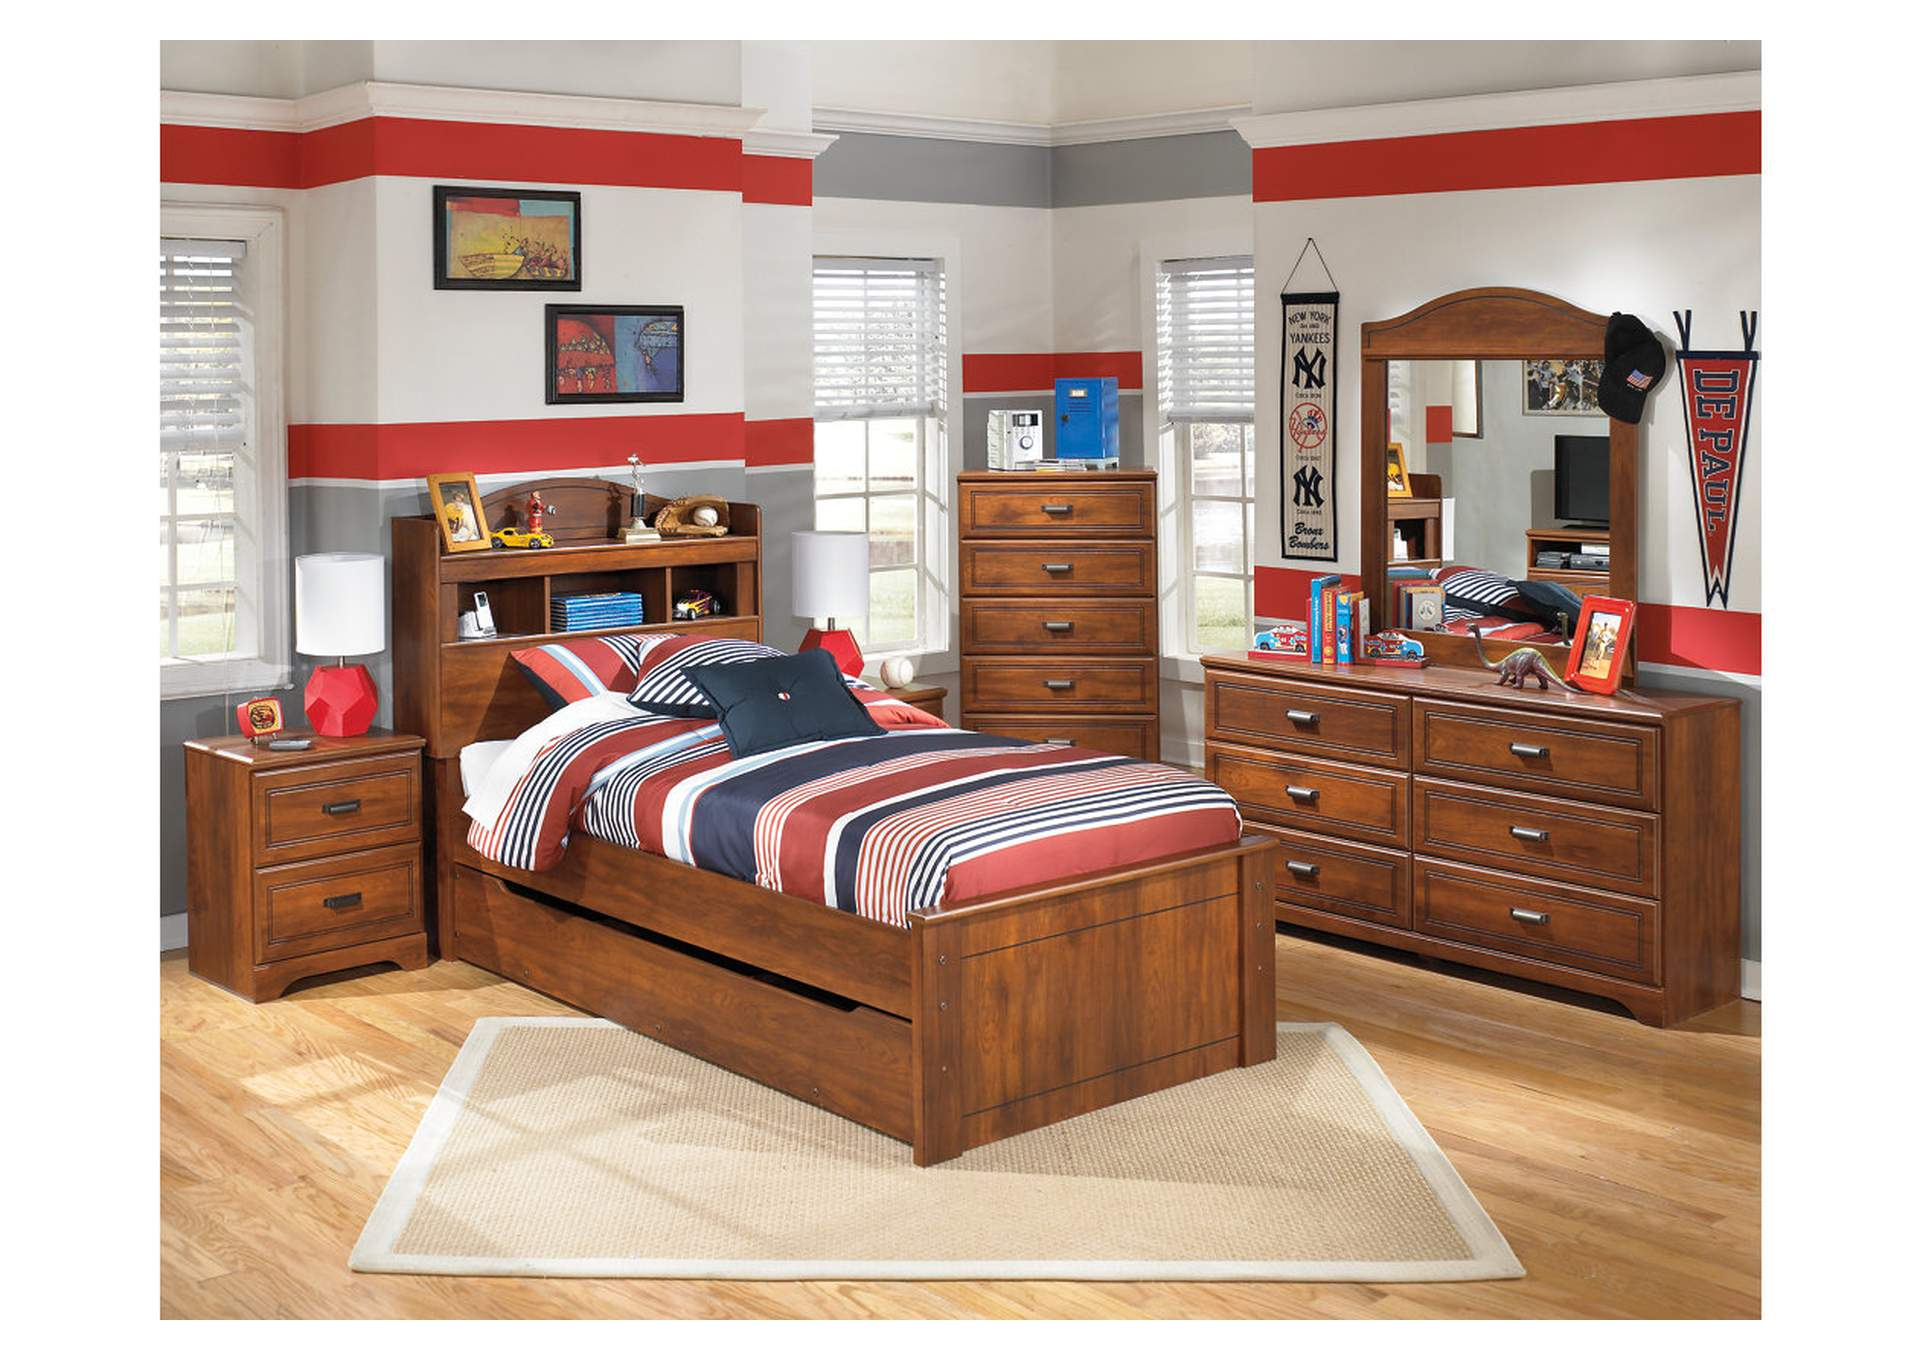 Barchan Twin Bookcase Bed w/Trundle, Dresser Mirror & Nightstand,Signature Design By Ashley